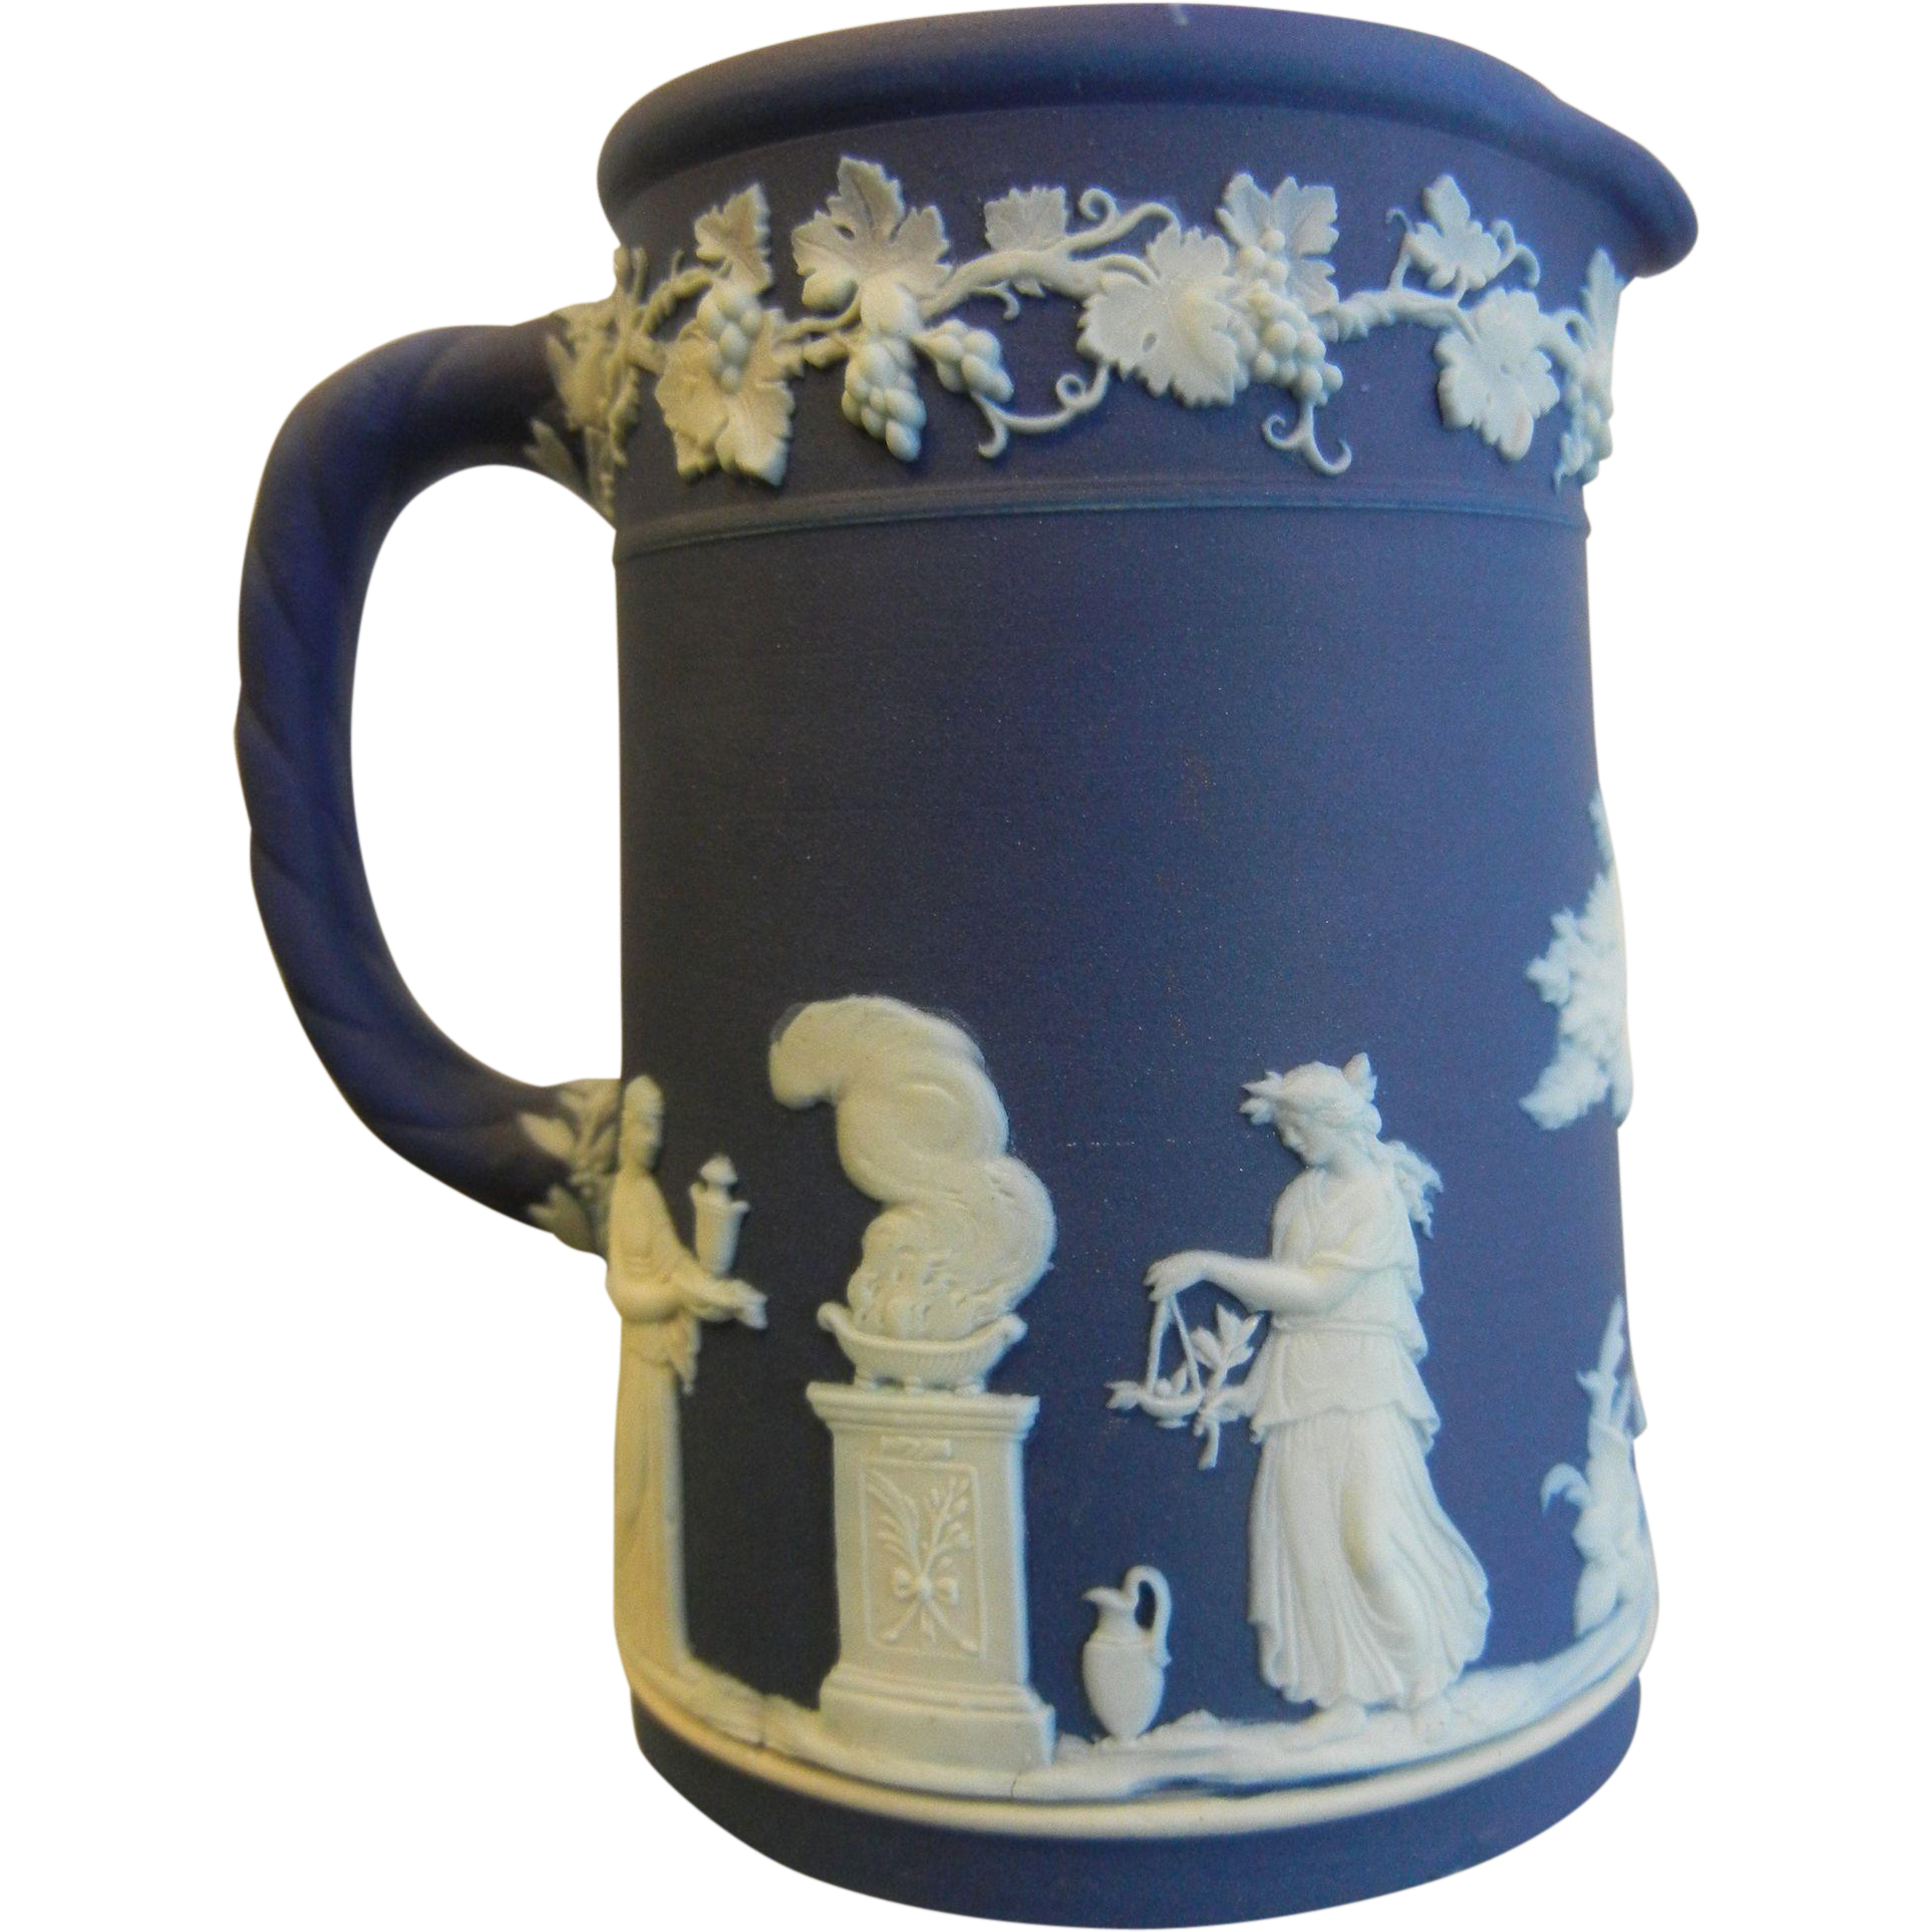 Wedgwood England Blue & White Porcelain Pitcher